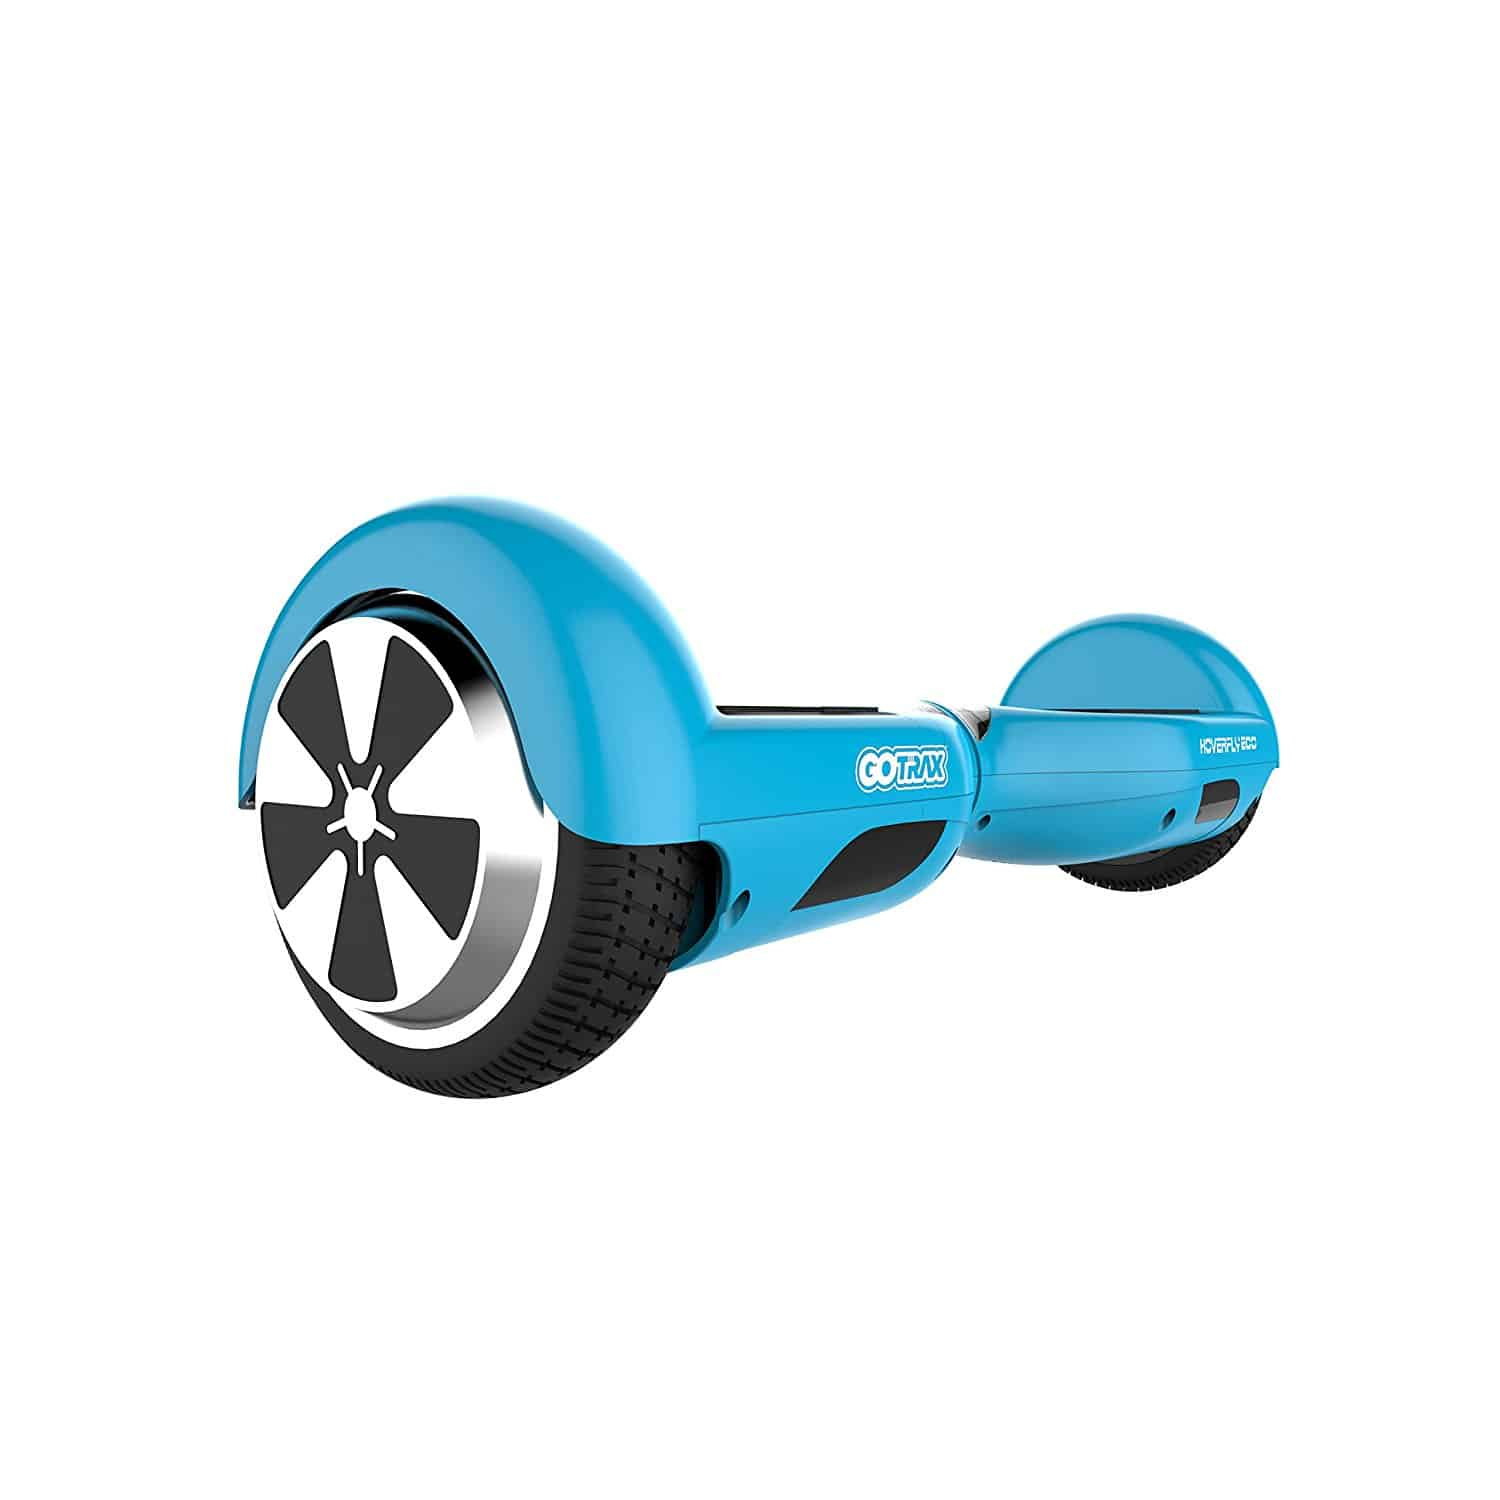 Best Hoverboard under $200 – GoTrax Hoverfly Eco